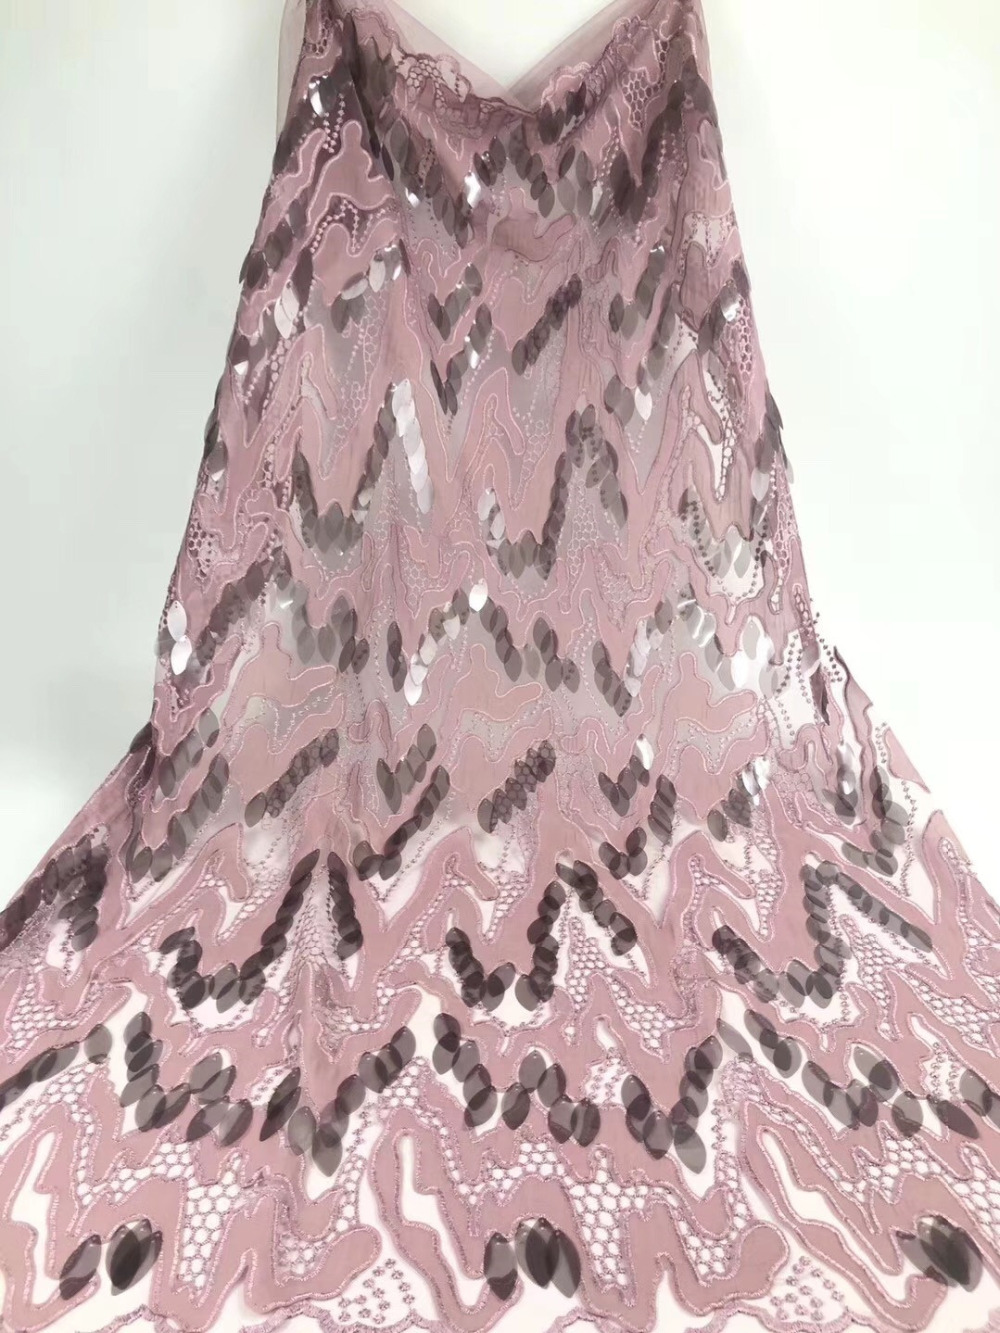 Bridal Nigerian Wedding Lace Materials Lace Fabric High Quality 2019 African Lace Fabric On Sale Beads Lace FabricBridal Nigerian Wedding Lace Materials Lace Fabric High Quality 2019 African Lace Fabric On Sale Beads Lace Fabric